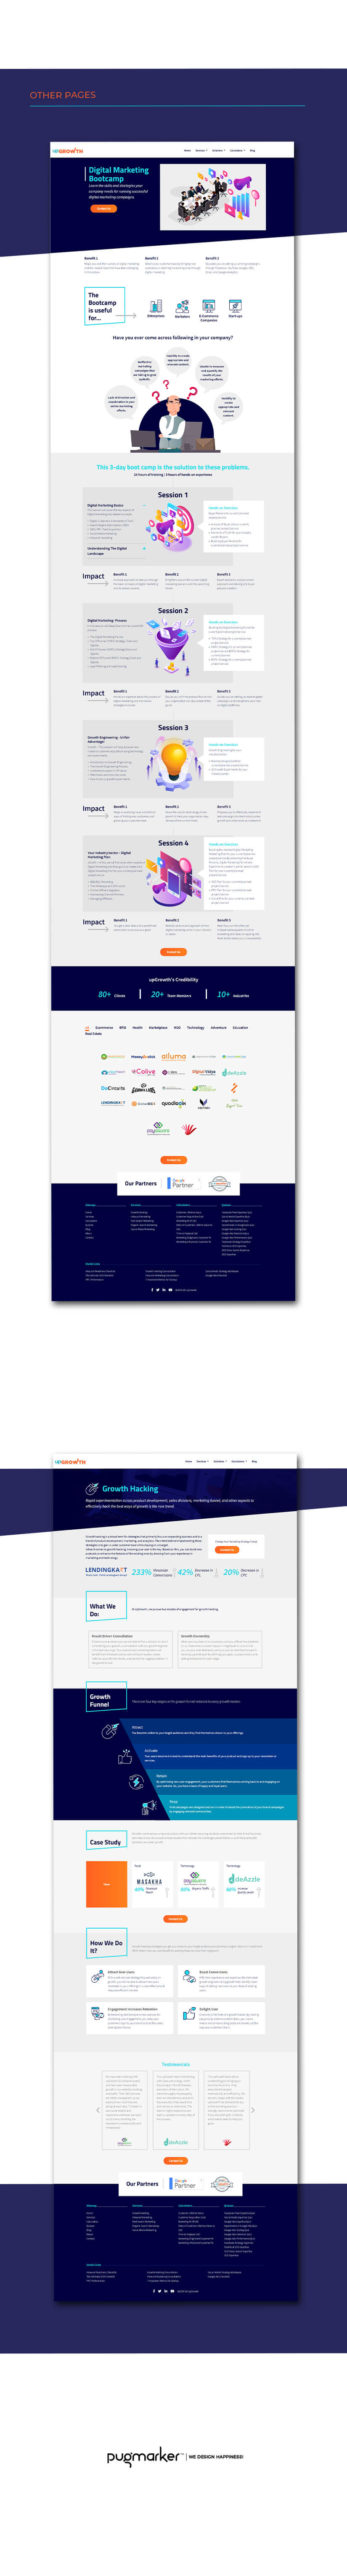 UpGrowth website pages design